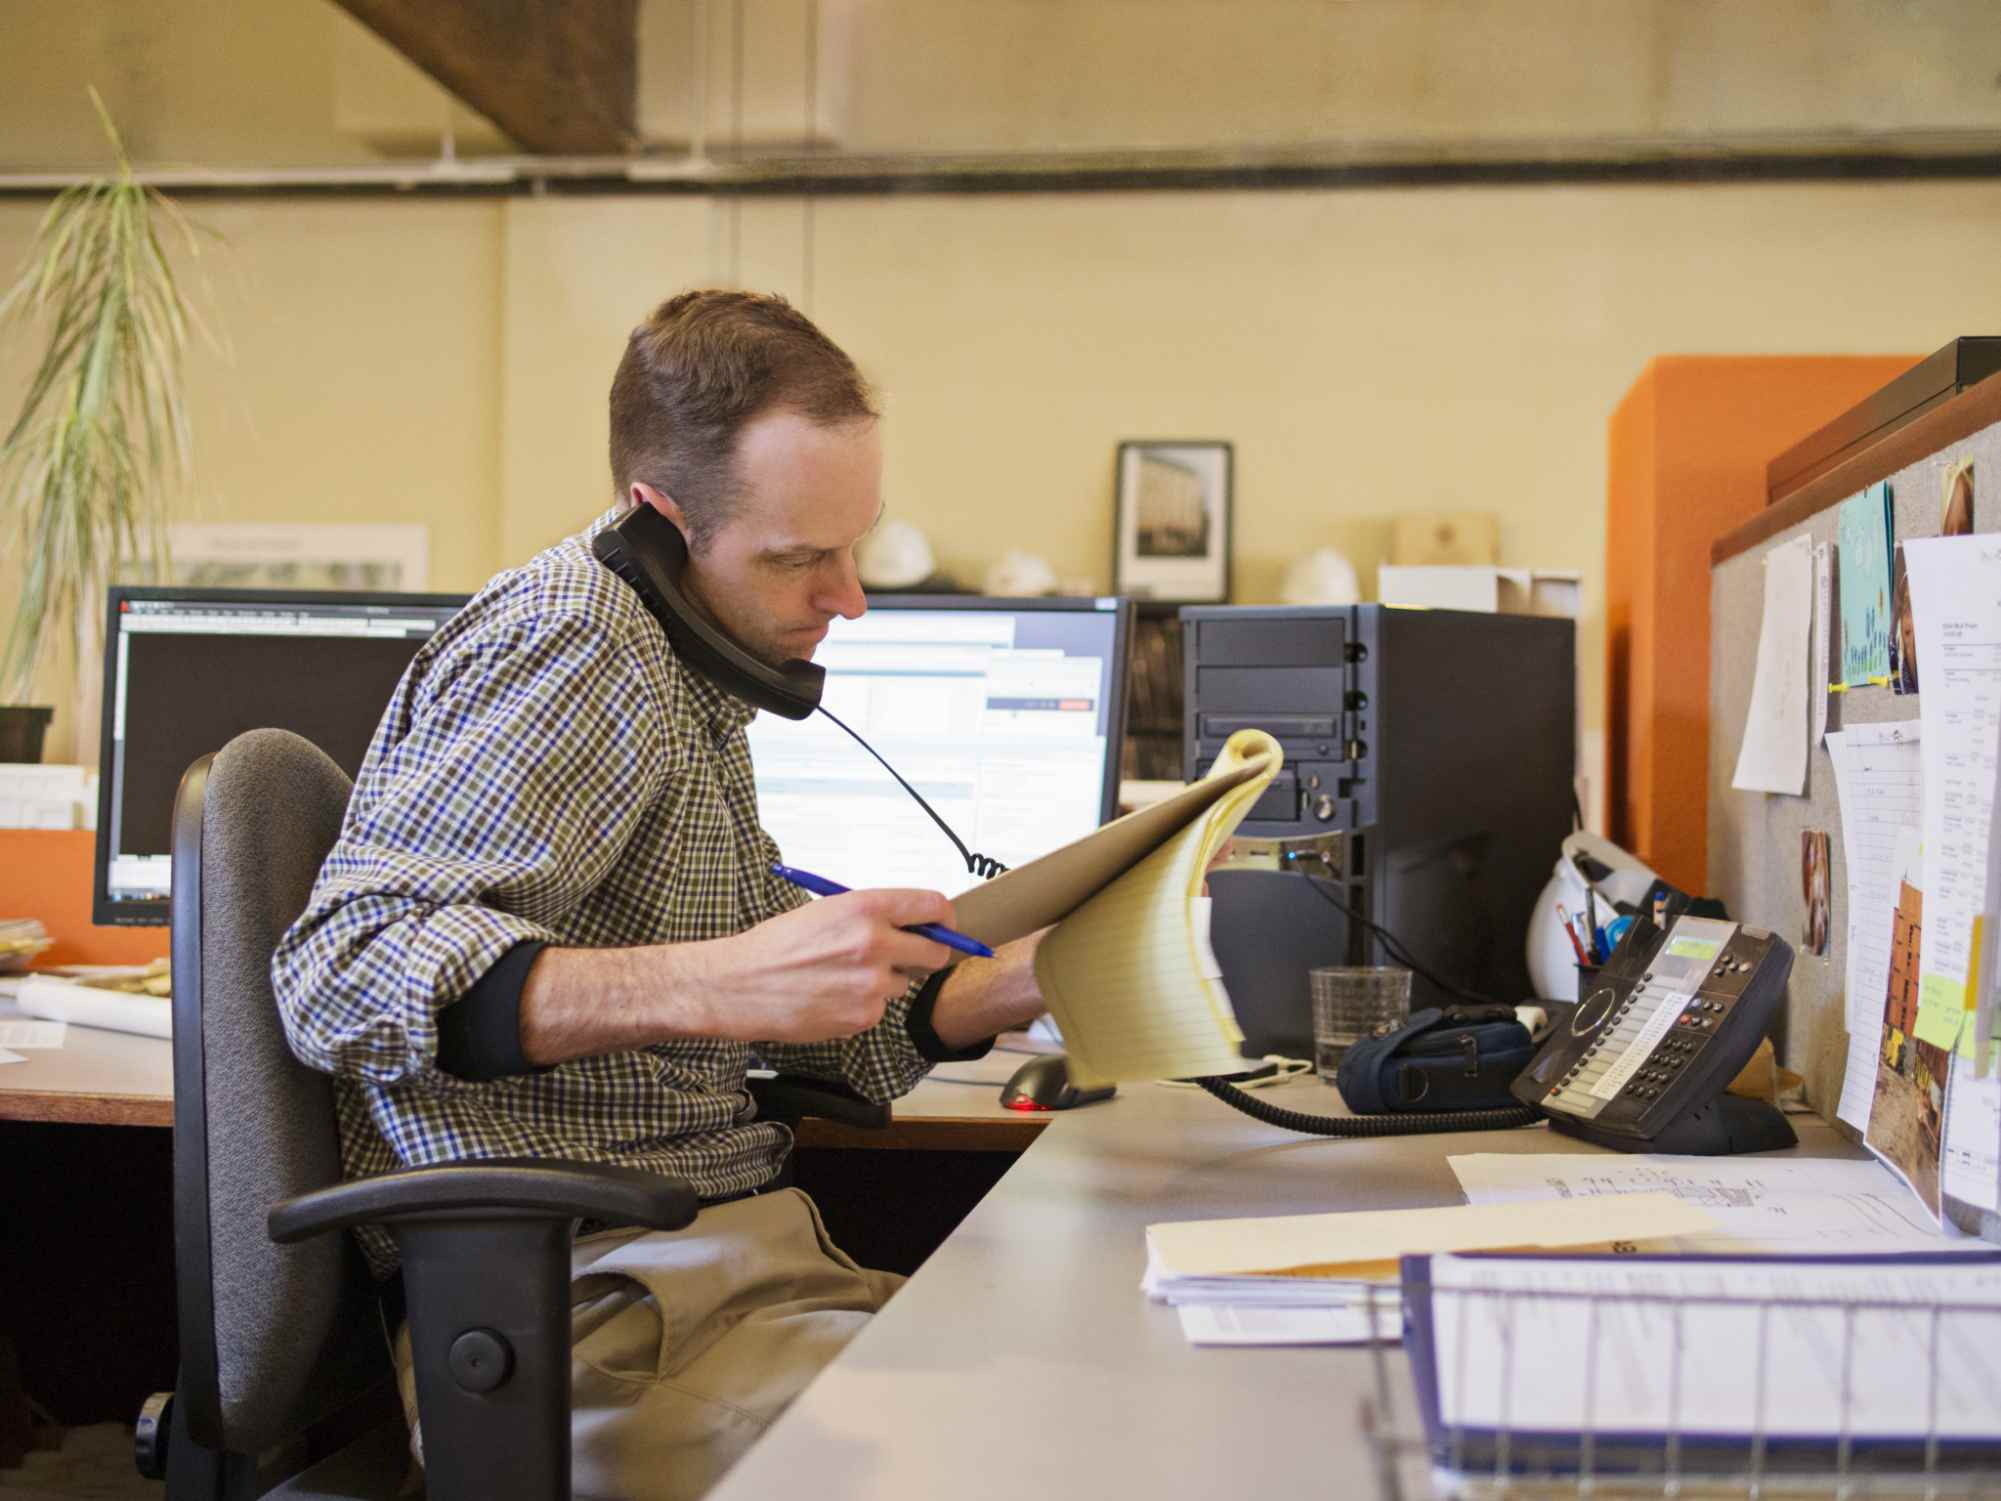 Man in office on the phone